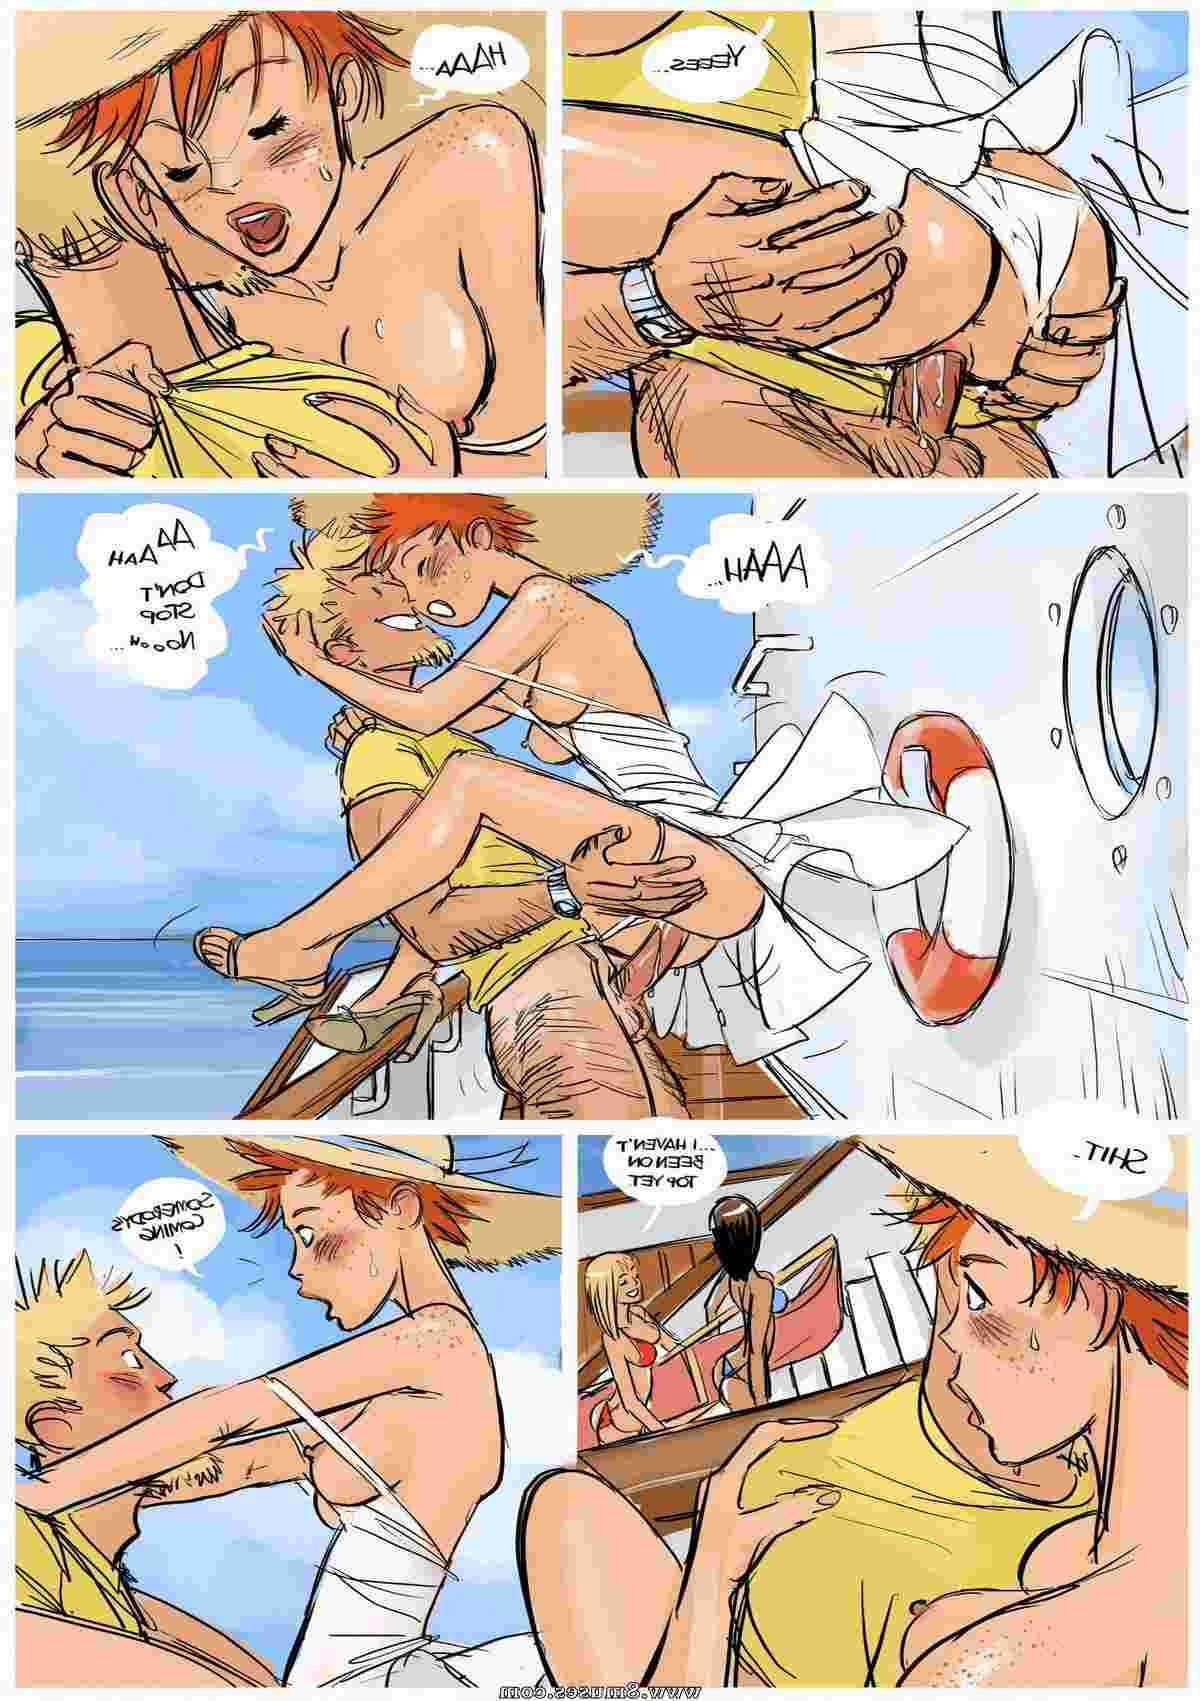 Slipshine-Comics/Lust-Boat Lust_Boat__8muses_-_Sex_and_Porn_Comics_50.jpg